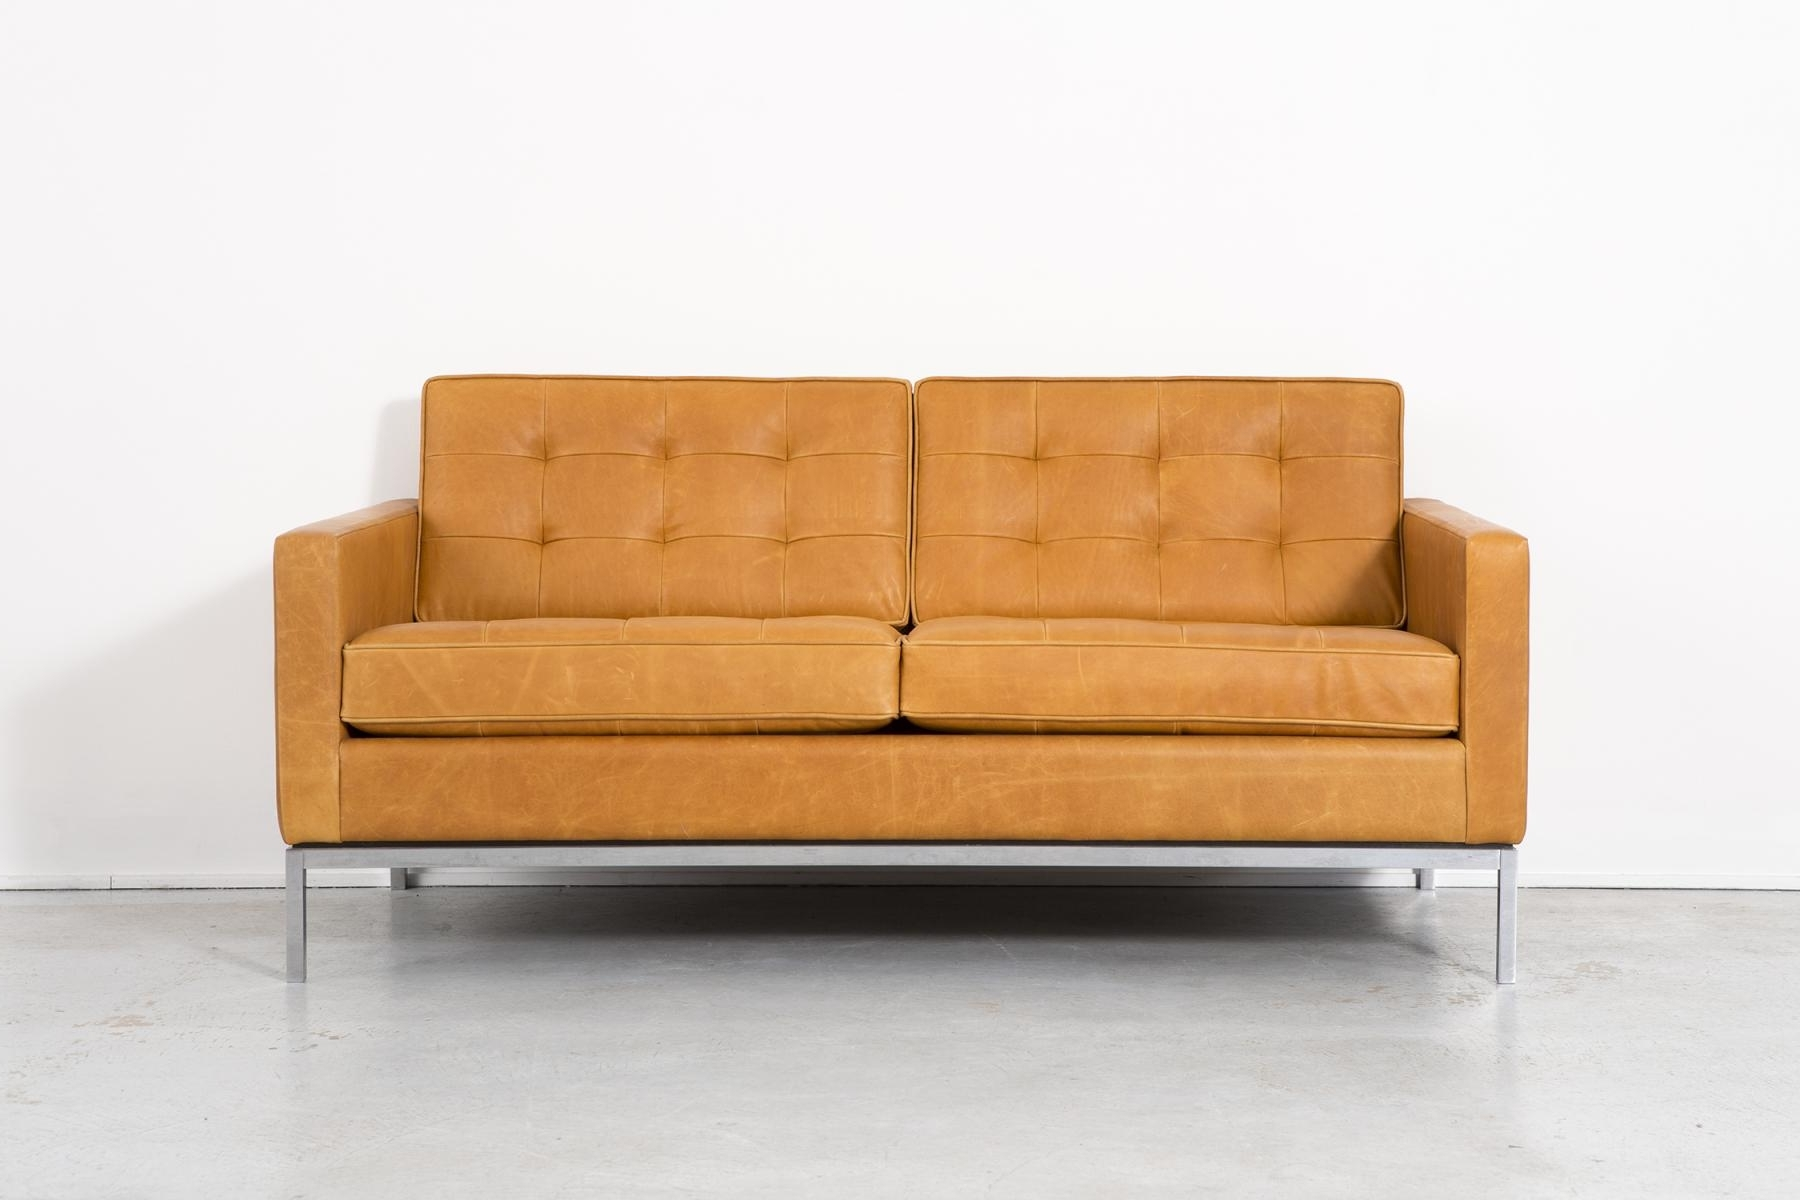 Most Popular Leather Sofaflorence Knoll Bassett For Knoll, 1970S For Sale Regarding Florence Leather Sofas (View 14 of 20)